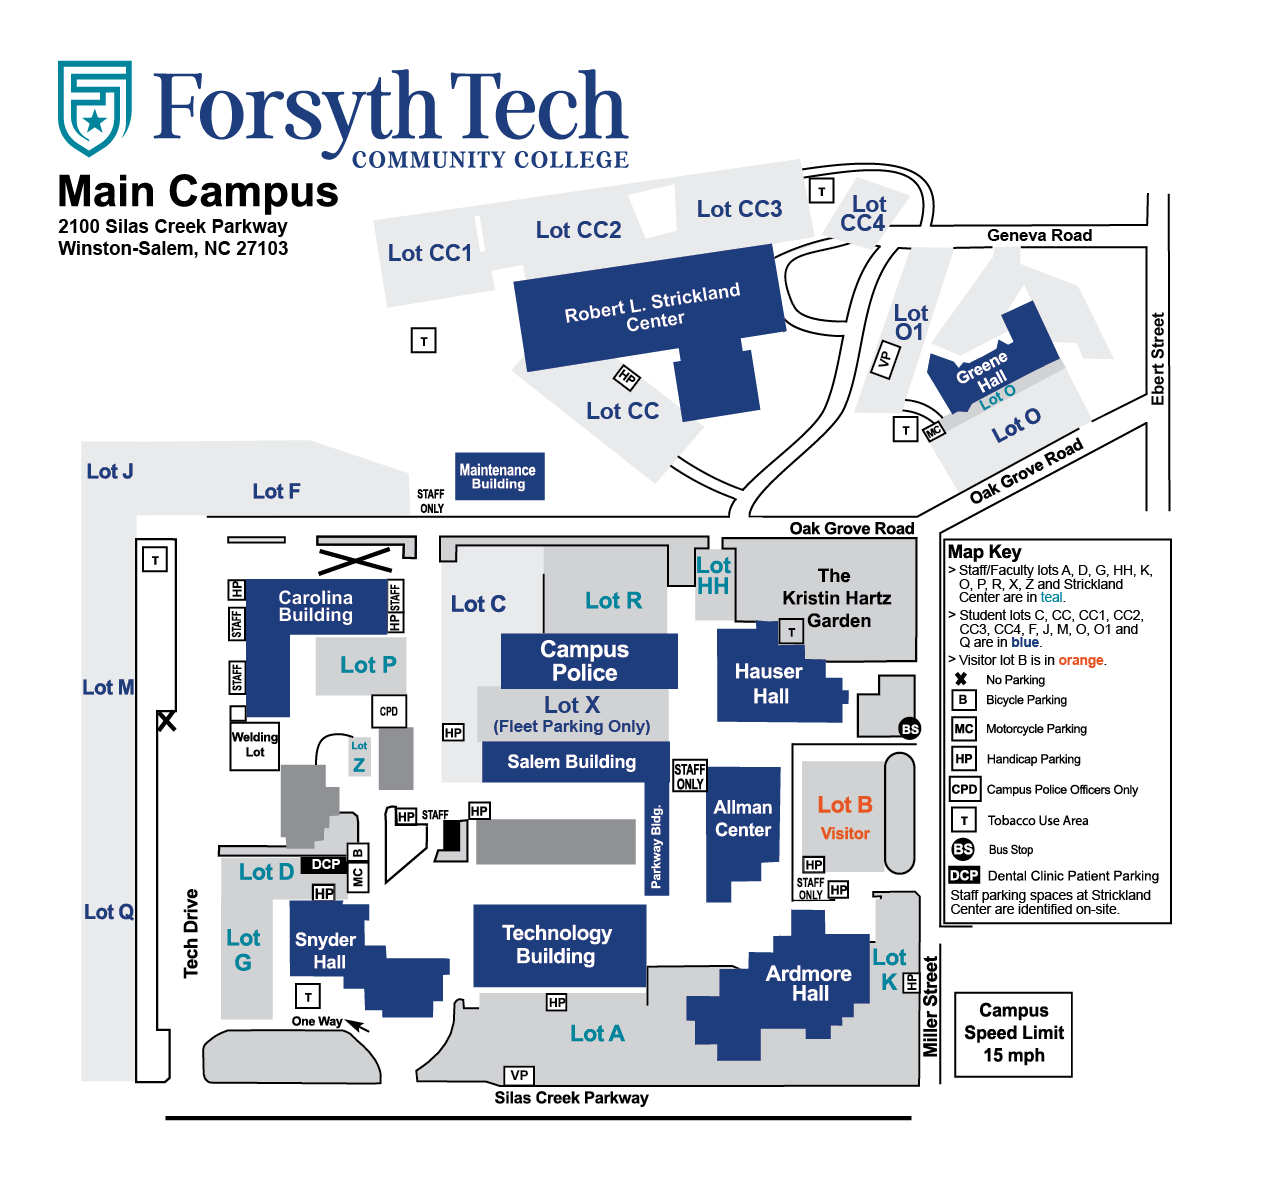 Map of Forsyth Tech's Main Campus